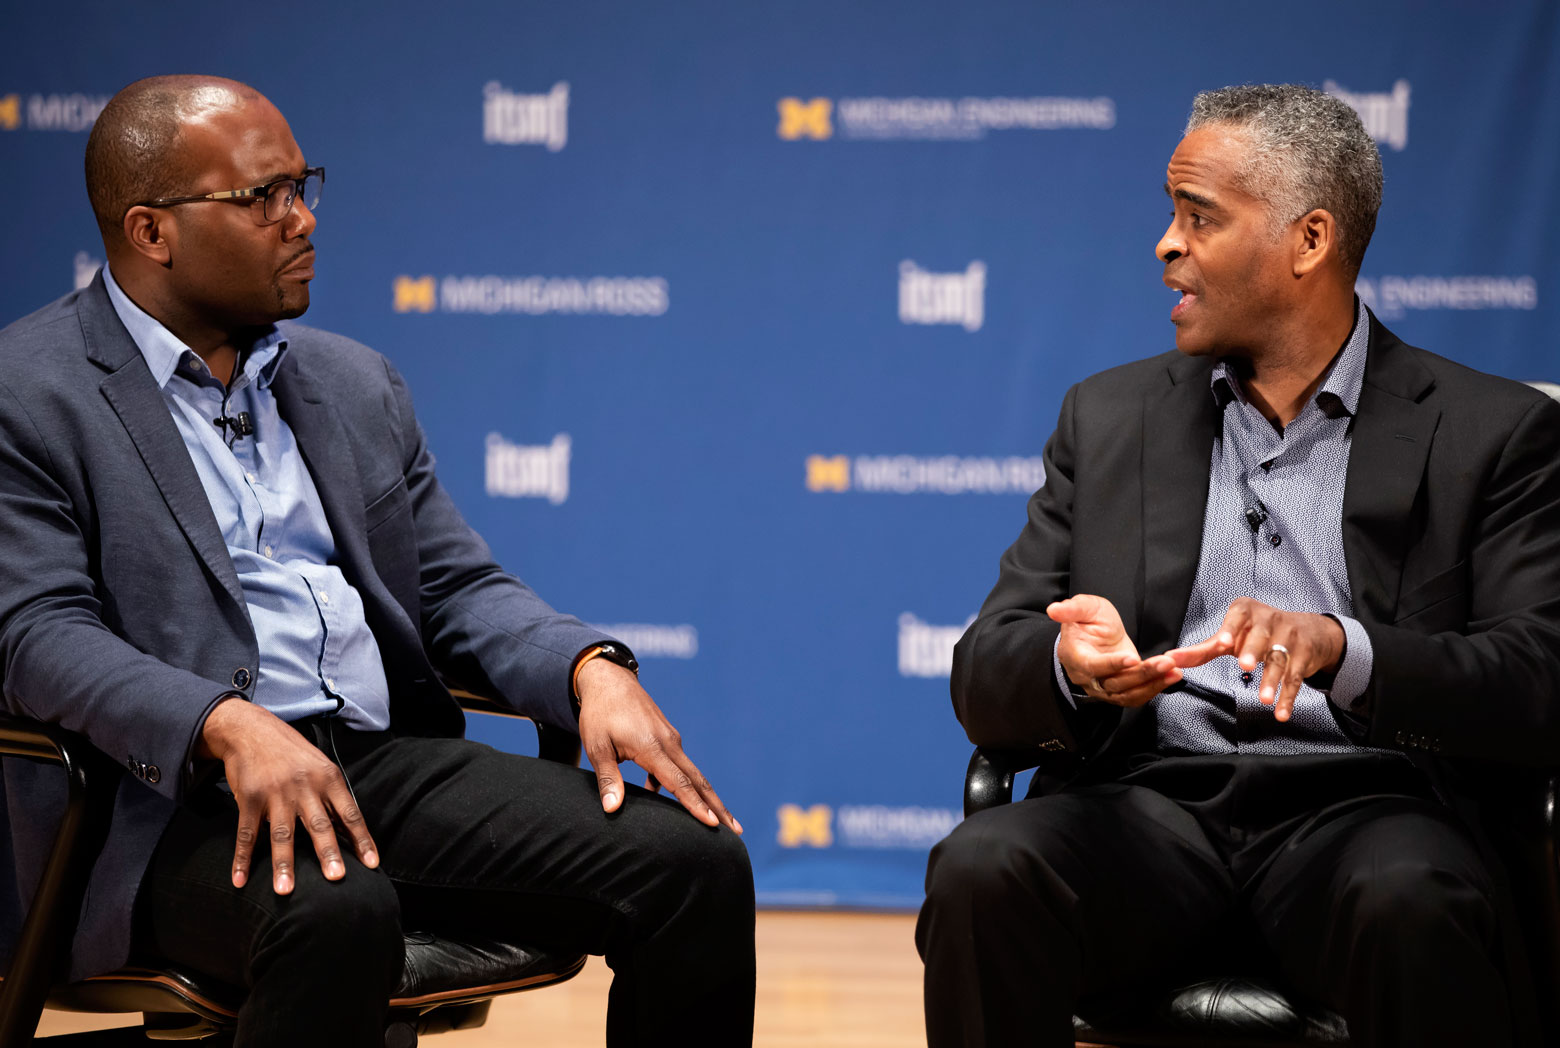 Ibrahim Jackson and Michael Jones talk while seated on a stage